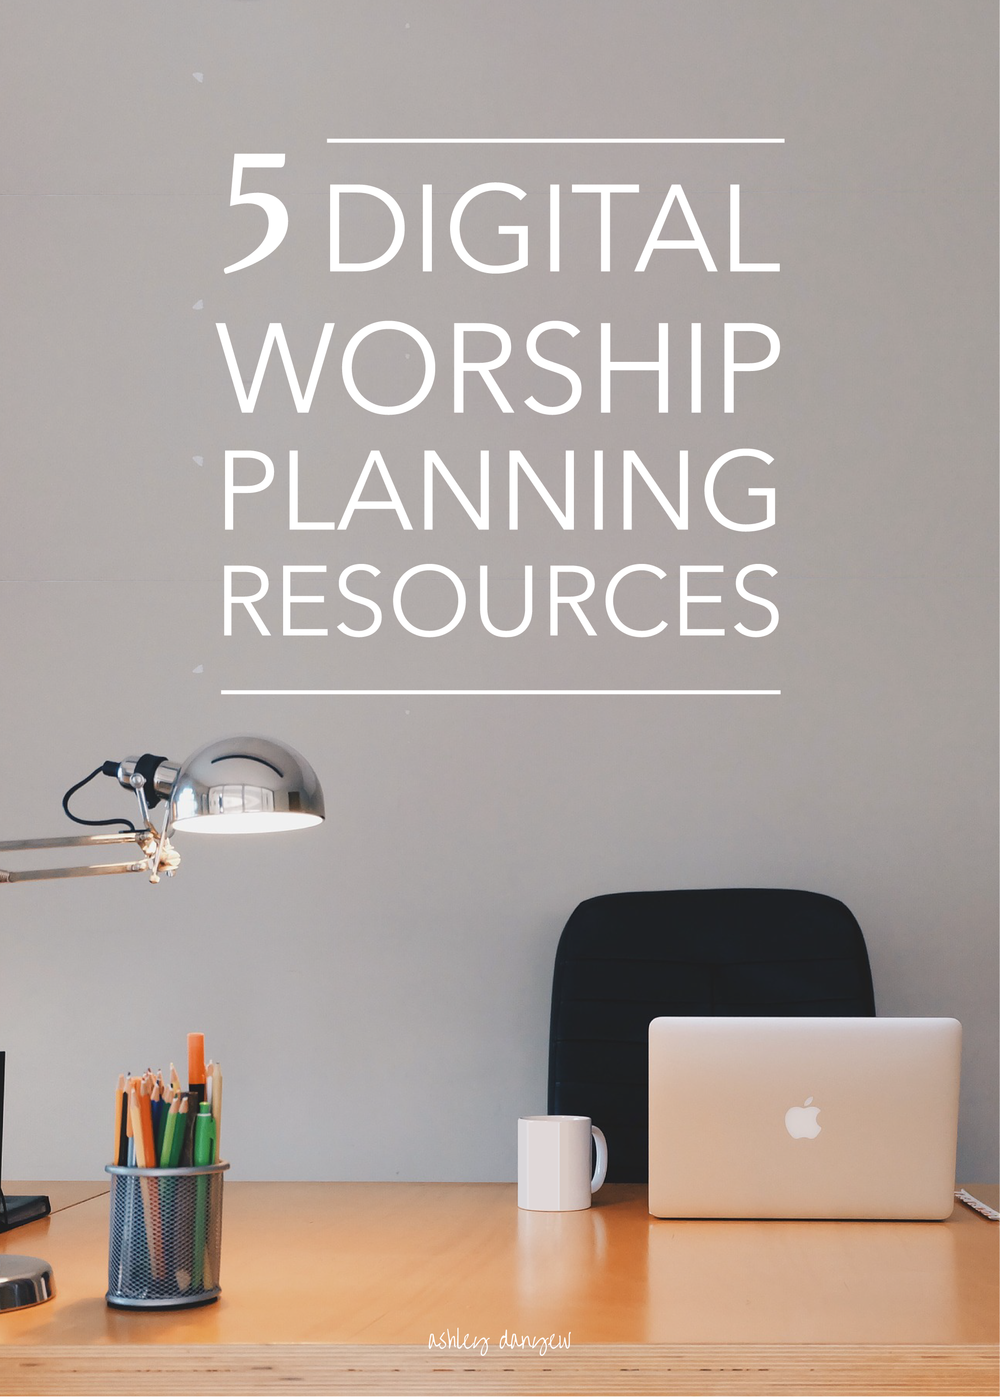 5 Digital Worship Planning Resources-01.png